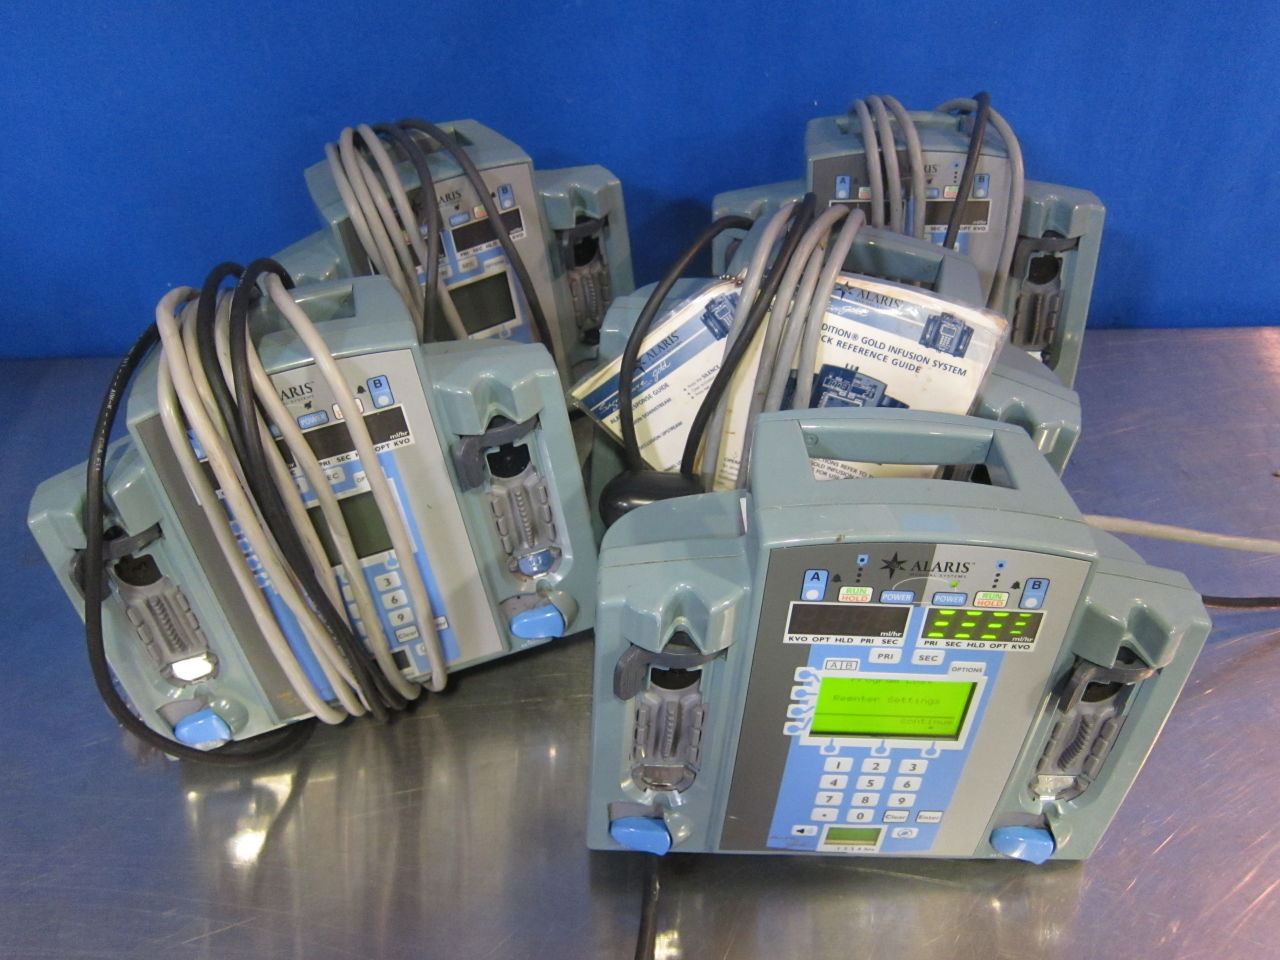 ALARIS 7230B  - Lot of 5 Pump IV Infusion